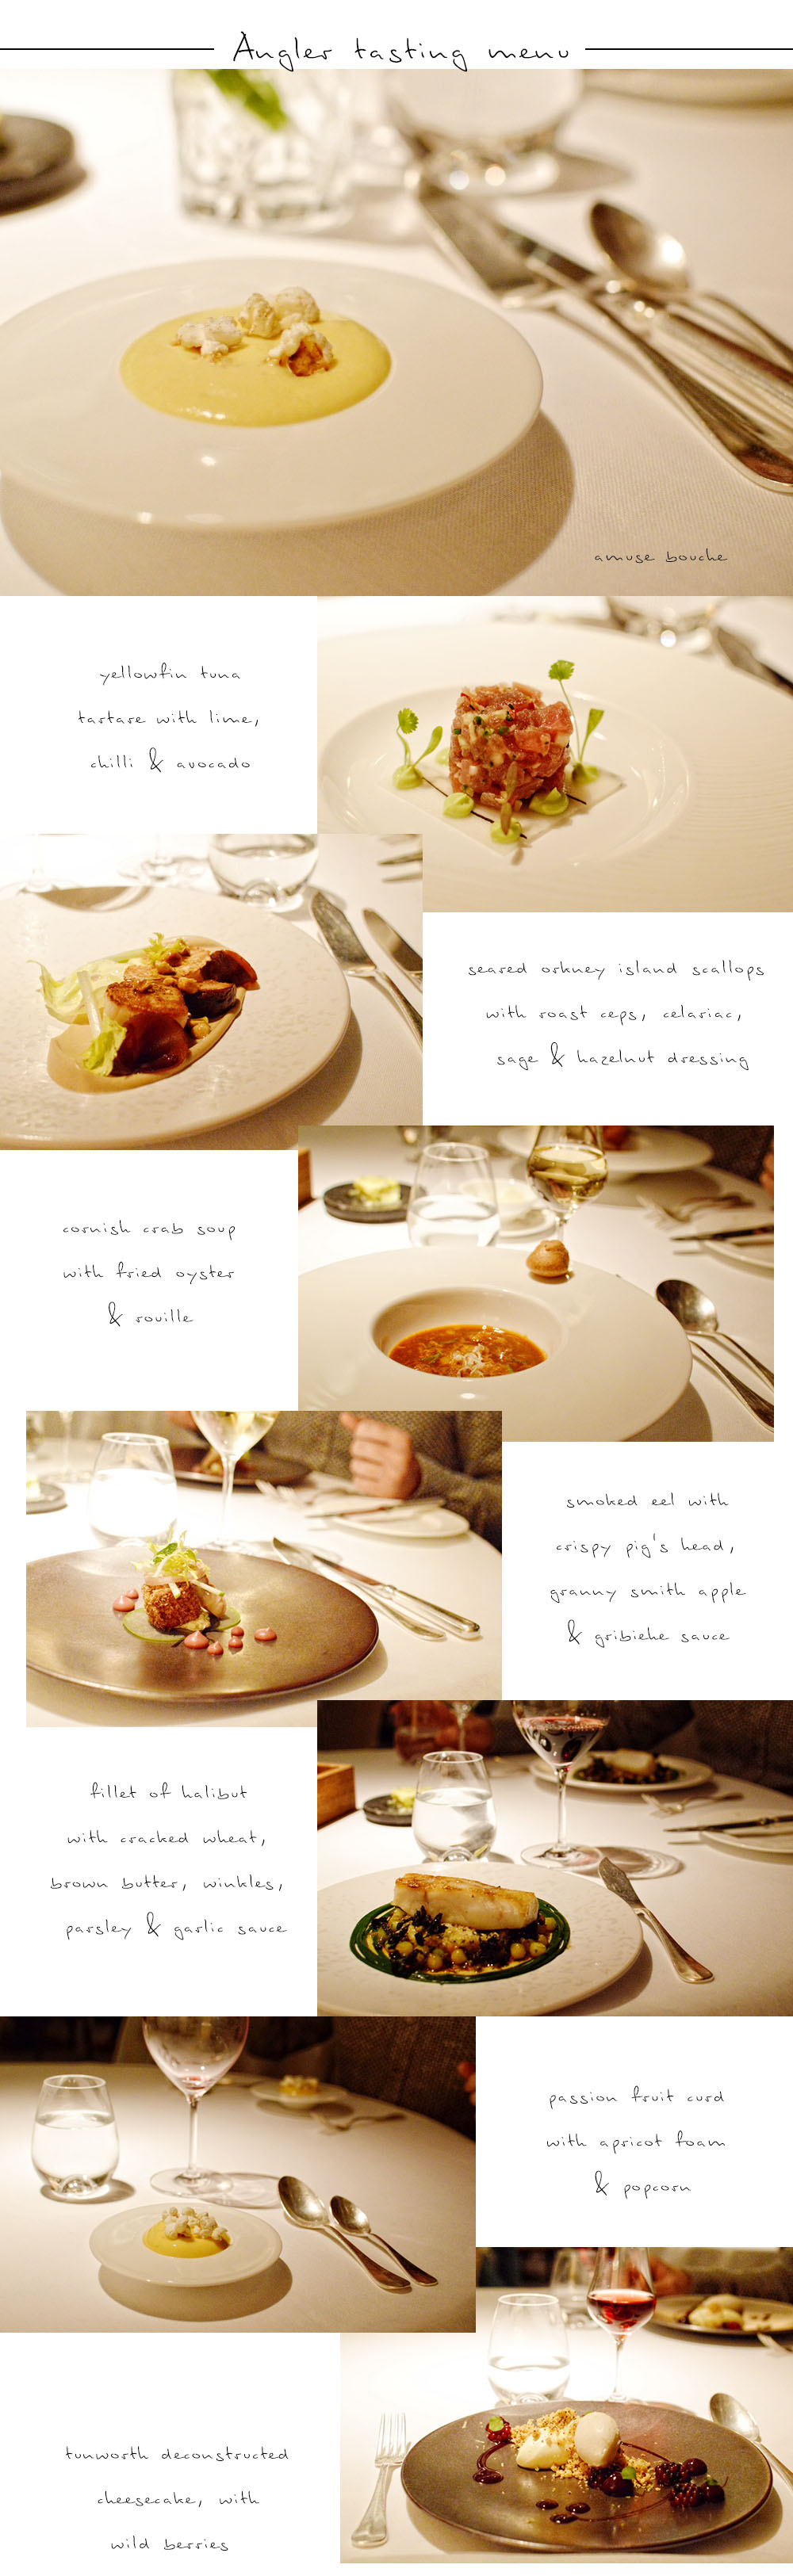 Angler tasting menu at South Place Hotel 01